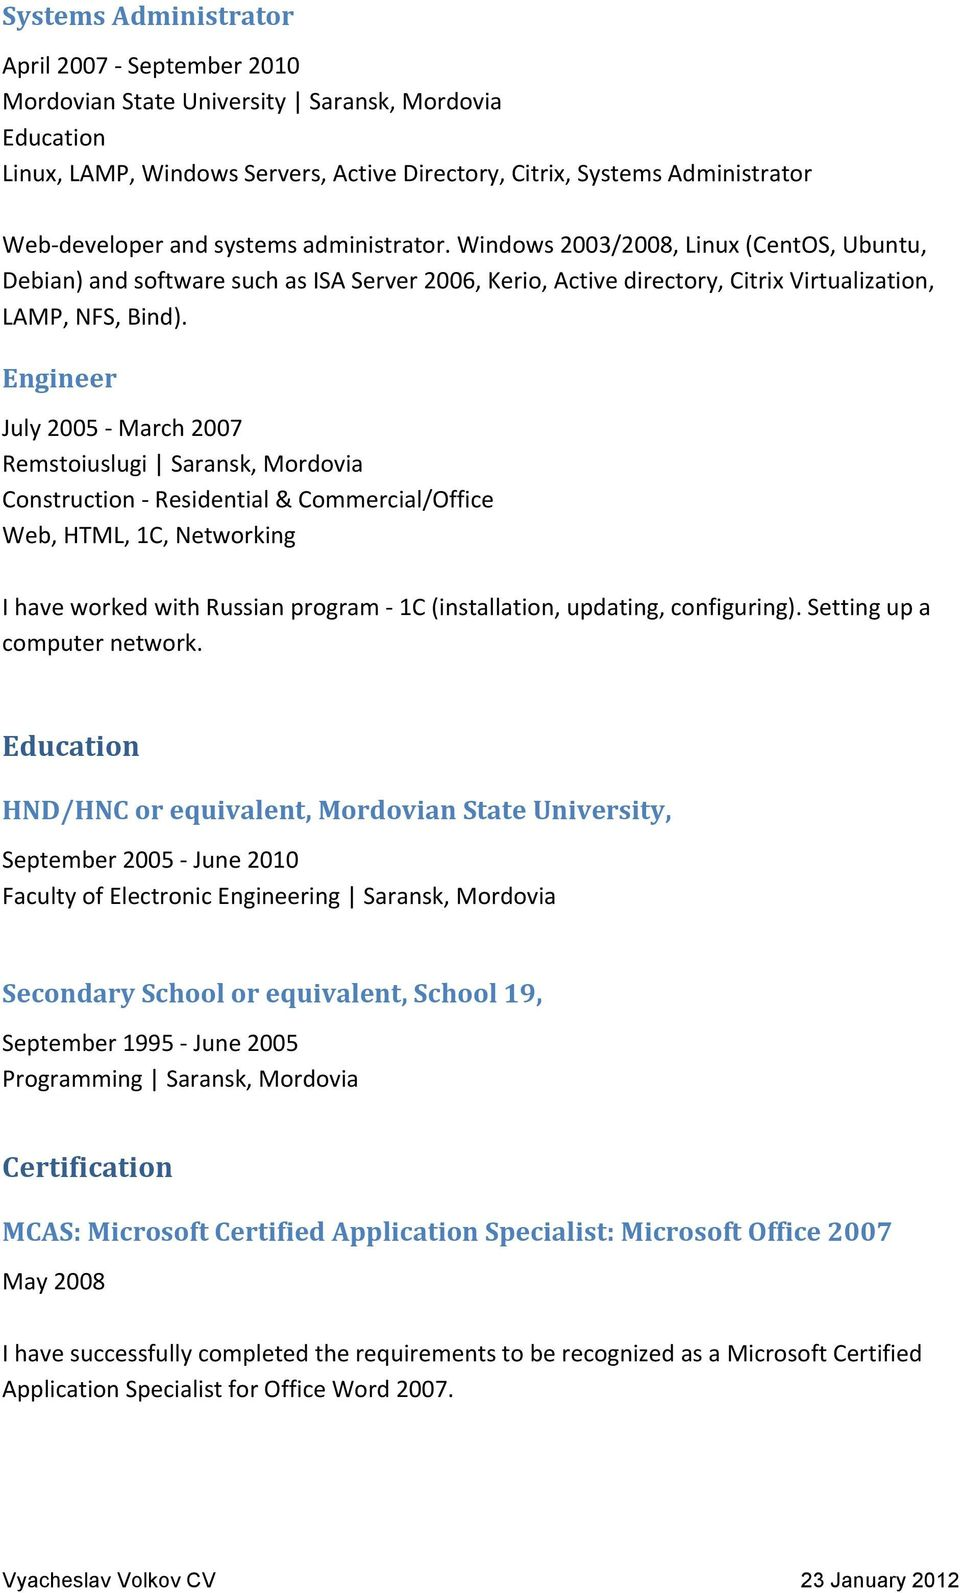 Engineer July 2005 - March 2007 Remstoiuslugi Saransk, Mordovia Construction - Residential & Commercial/Office Web, HTML, 1C, Networking I have worked with Russian program - 1C (installation,